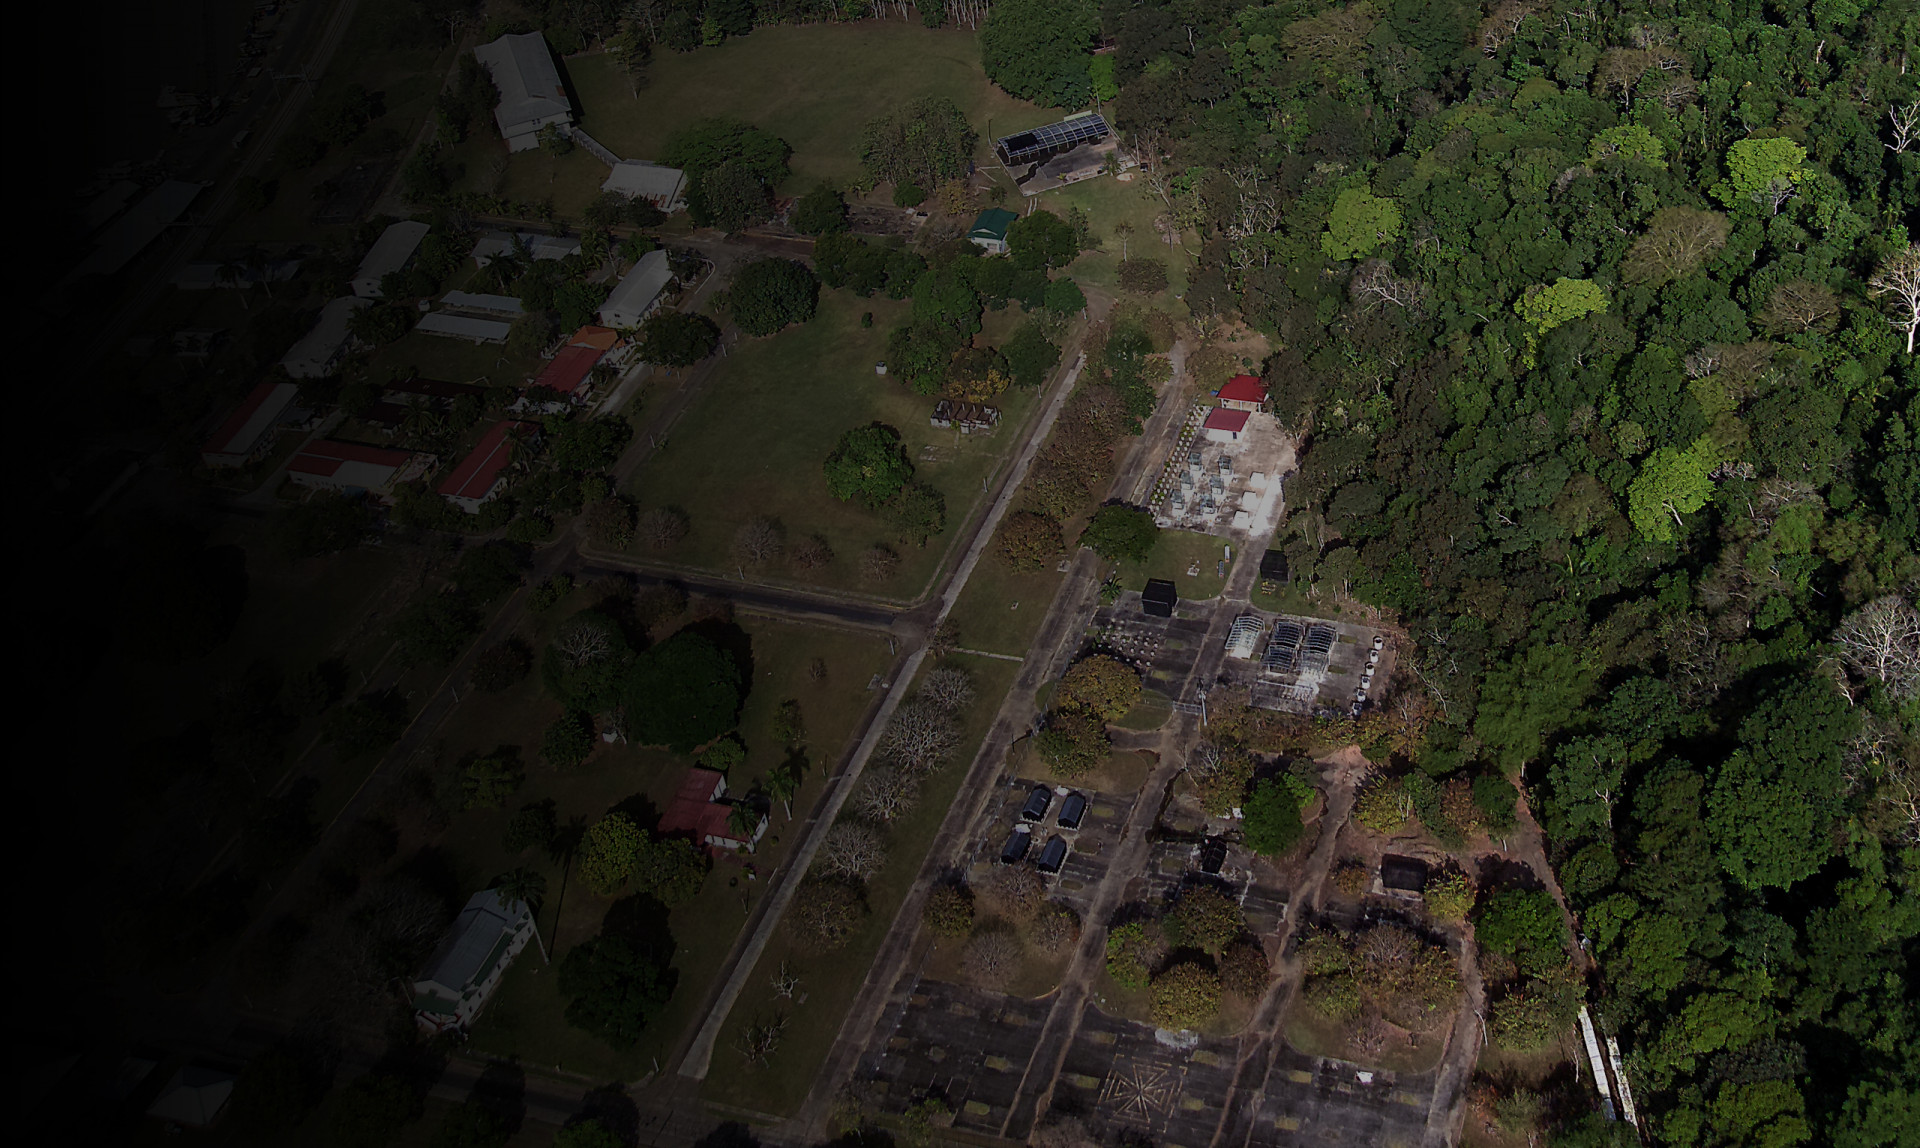 STRI purchased a 17.5-hectare site in a first step toward establishing a campus in Gamboa